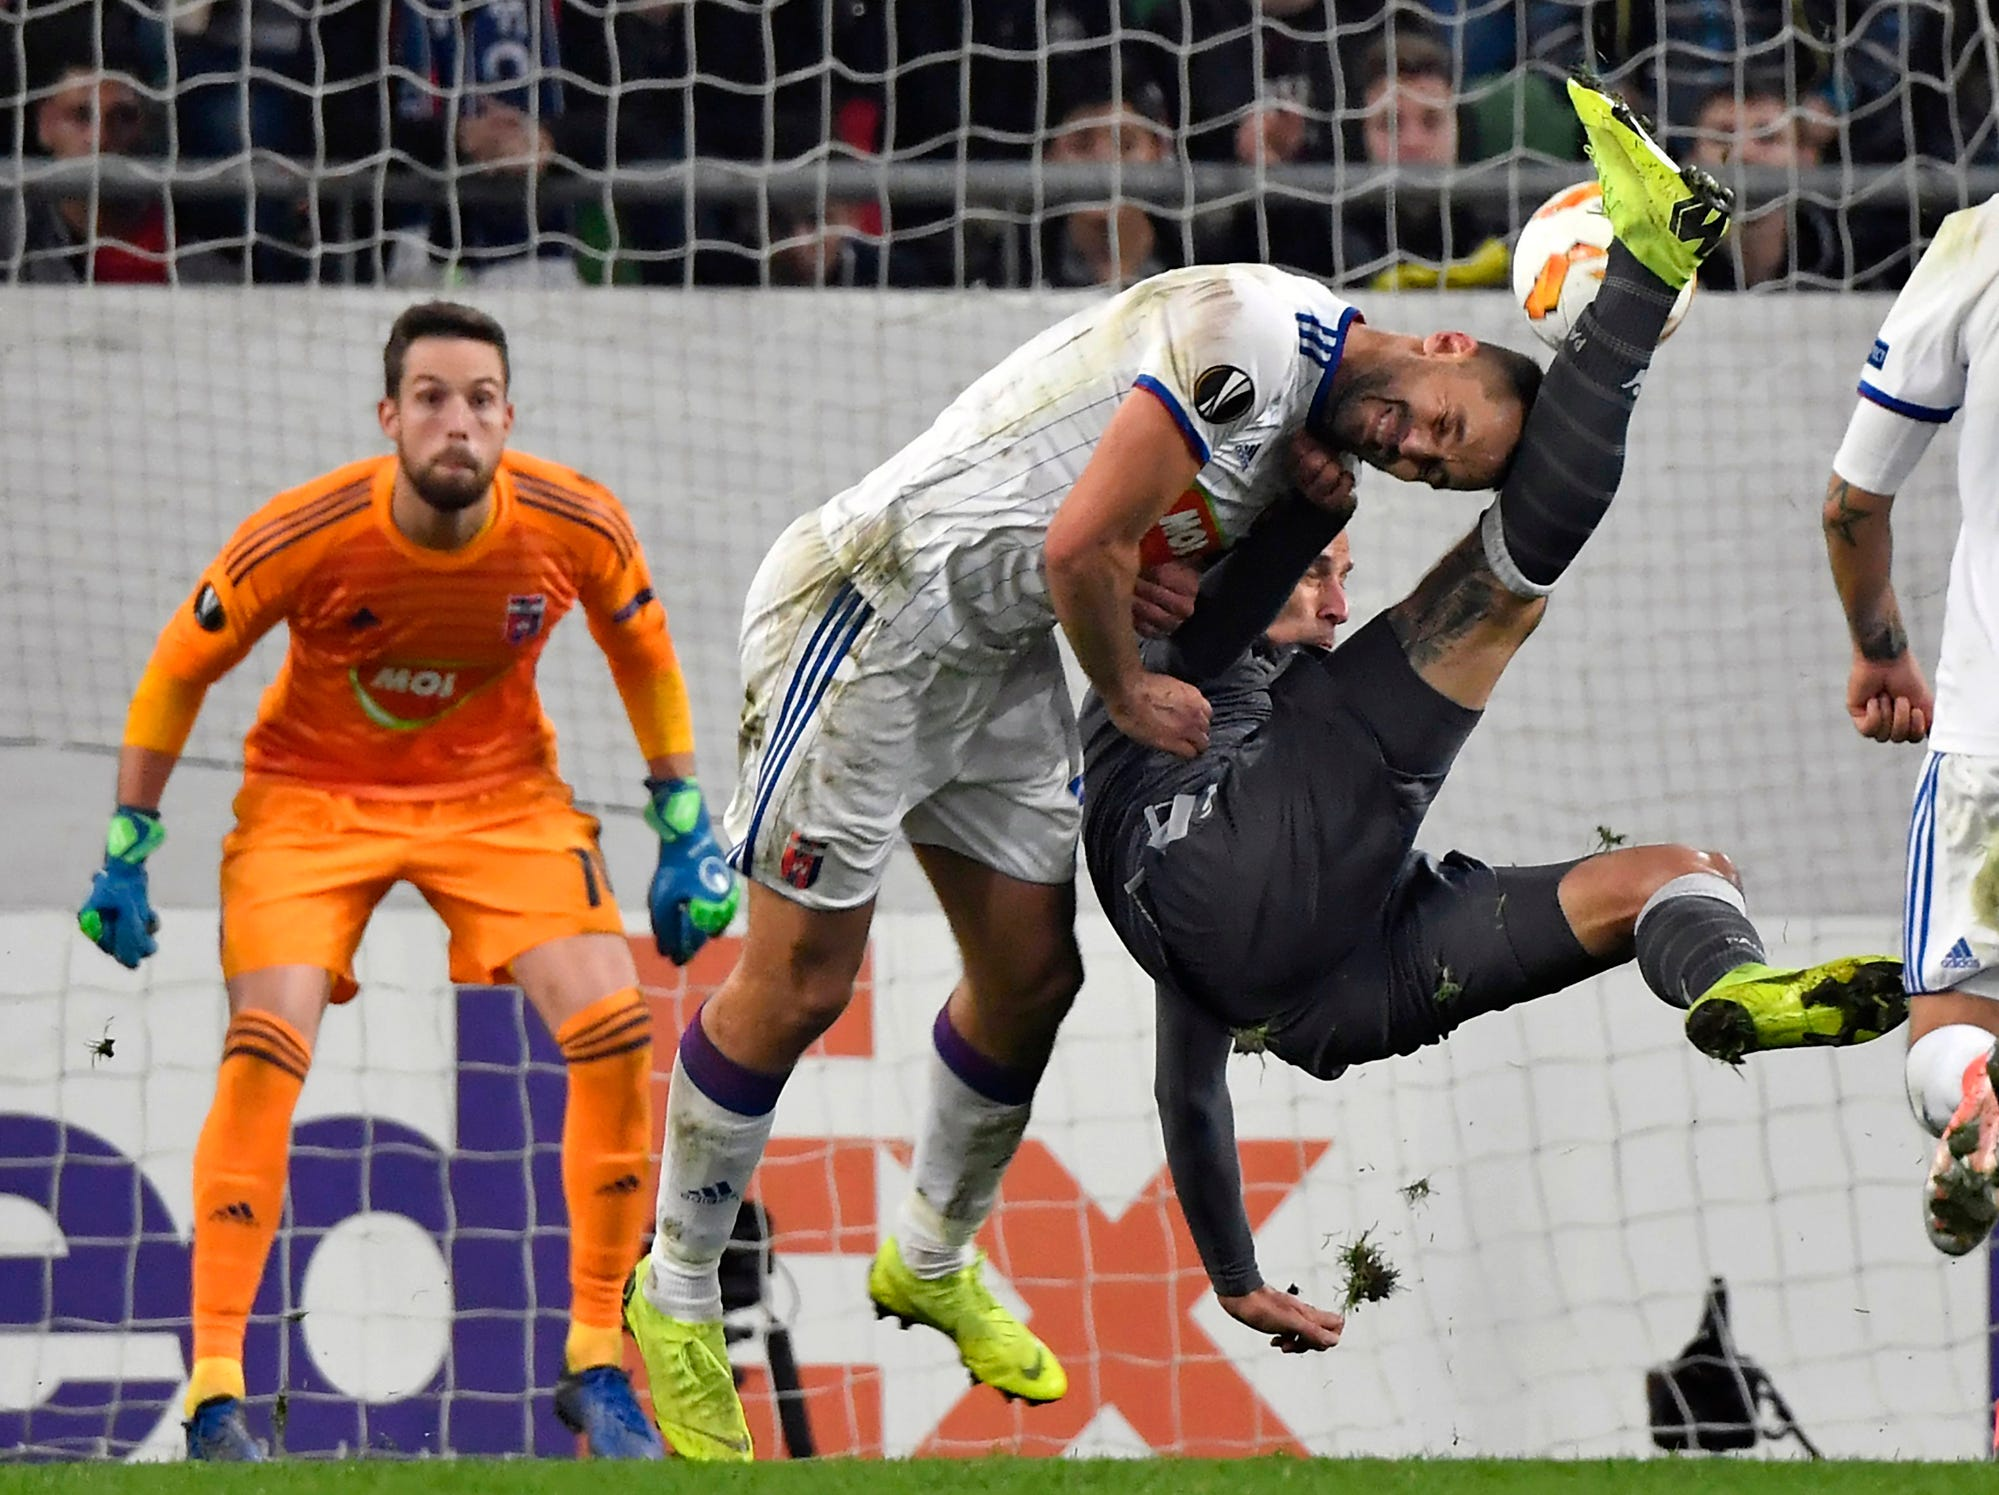 Roland Juhasz of Vidi, centre, in action against Aleksandar Prijovic of PAOK, right, during their Europa League Group L fourth round soccer match of MOL Vidi FC of Hungary vs PAOK Thessaloniki of Greece in Groupama Arena in Budapest, Hungary, Thursday, Nov. 8, 2018.  Vidi went on to win the match 1-0. (Tibor Illyes/MTI via AP)